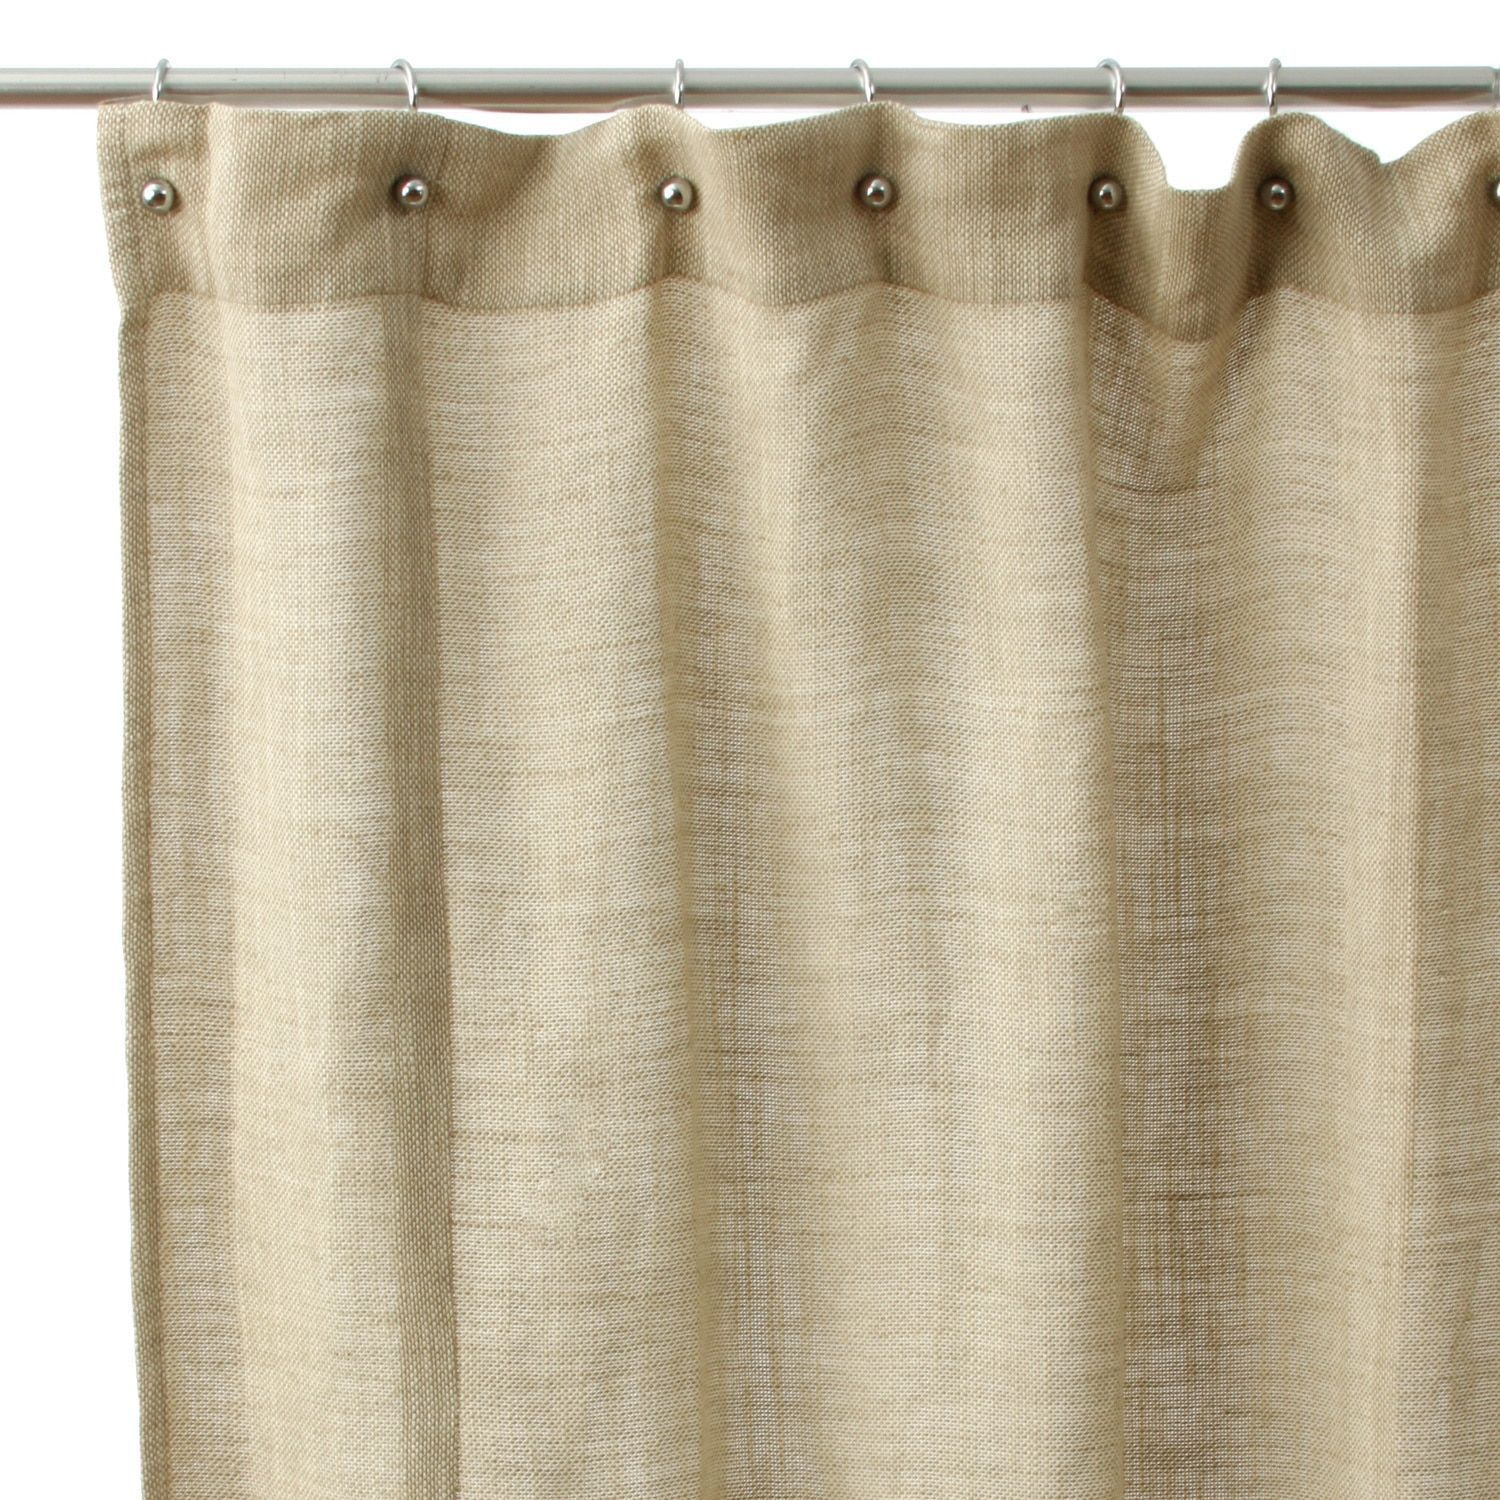 Cottage Shower Curtain Cottage Home Jack Rustic Cotton Shower Curtain Natural Tan